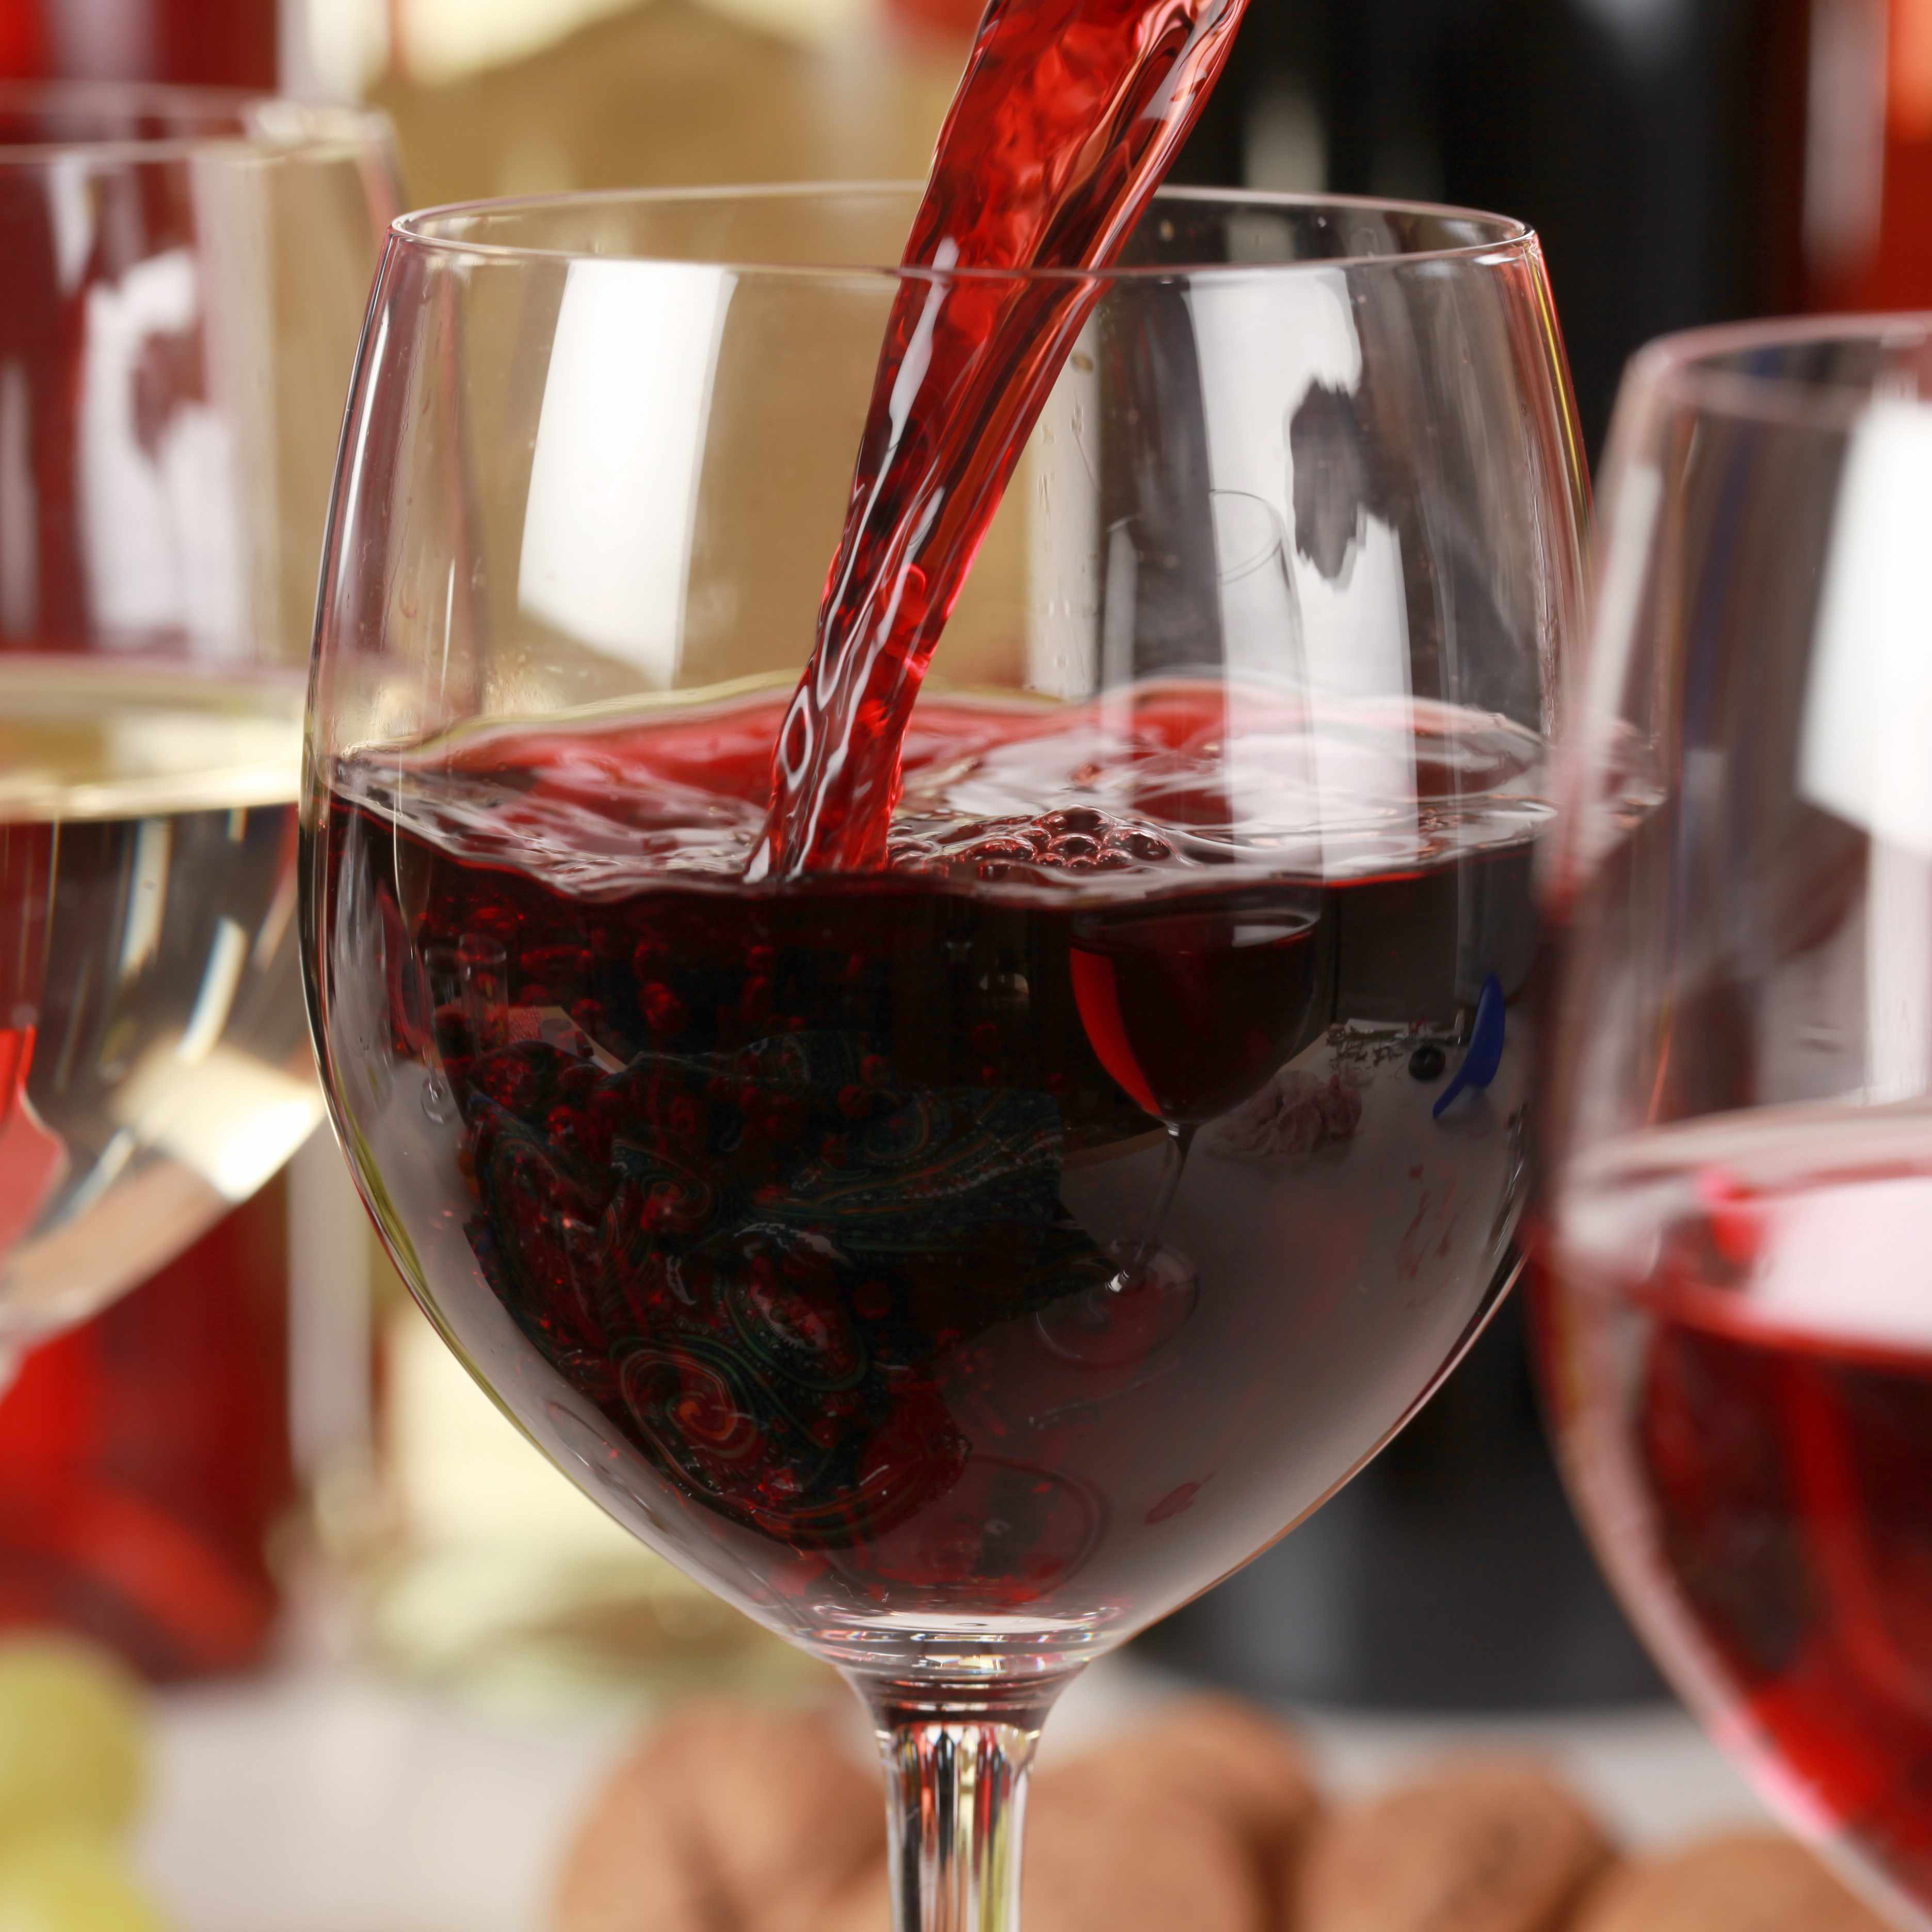 a row of three wine glasses containing white and red wines